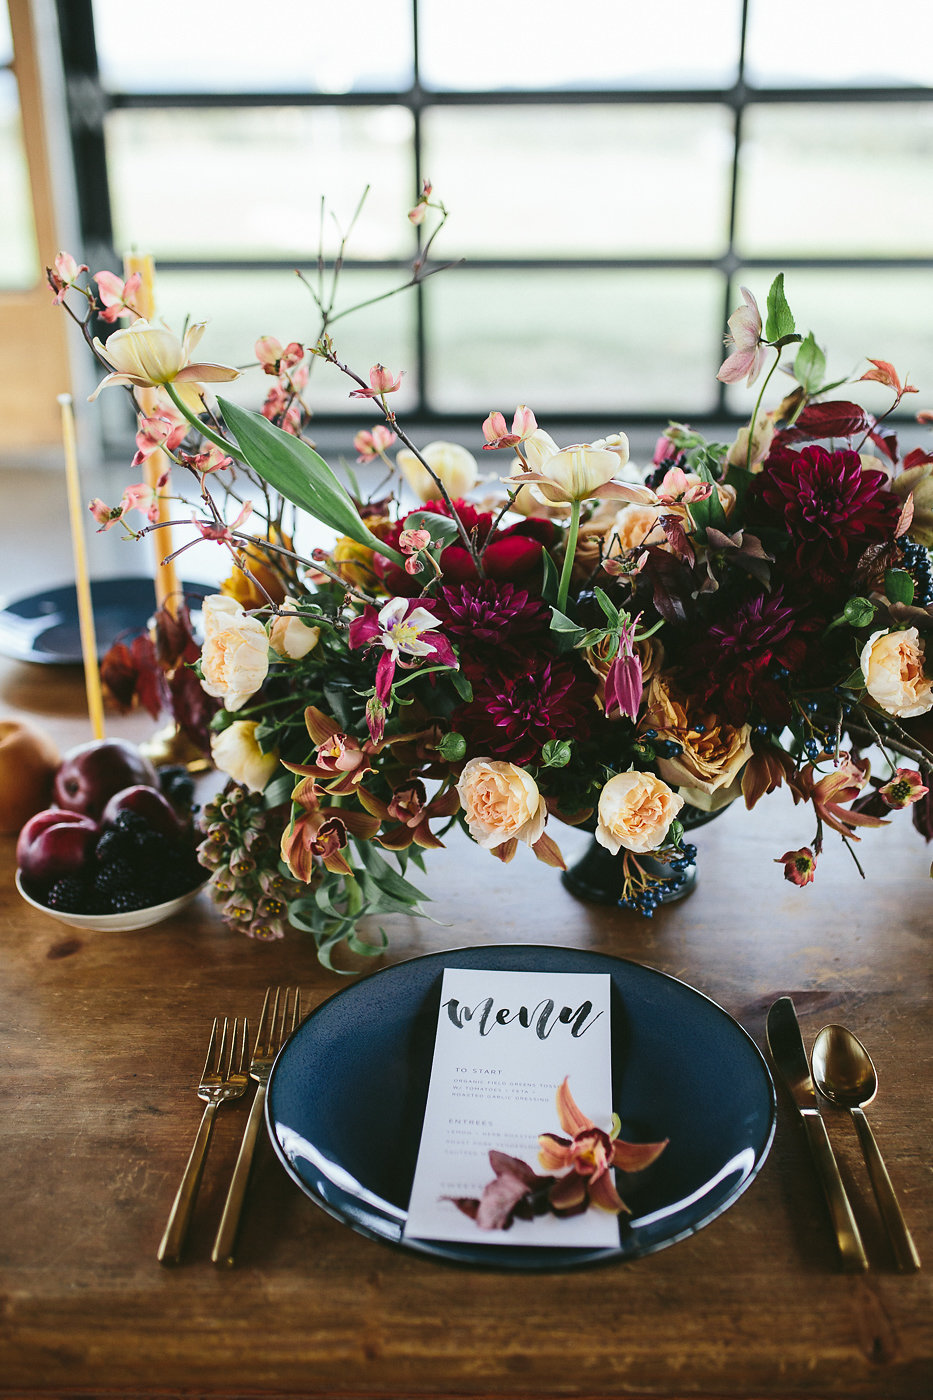 wedding table settings - photo by Hannah Victoria Photography http://ruffledblog.com/rich-toned-industrial-wedding-inspiration